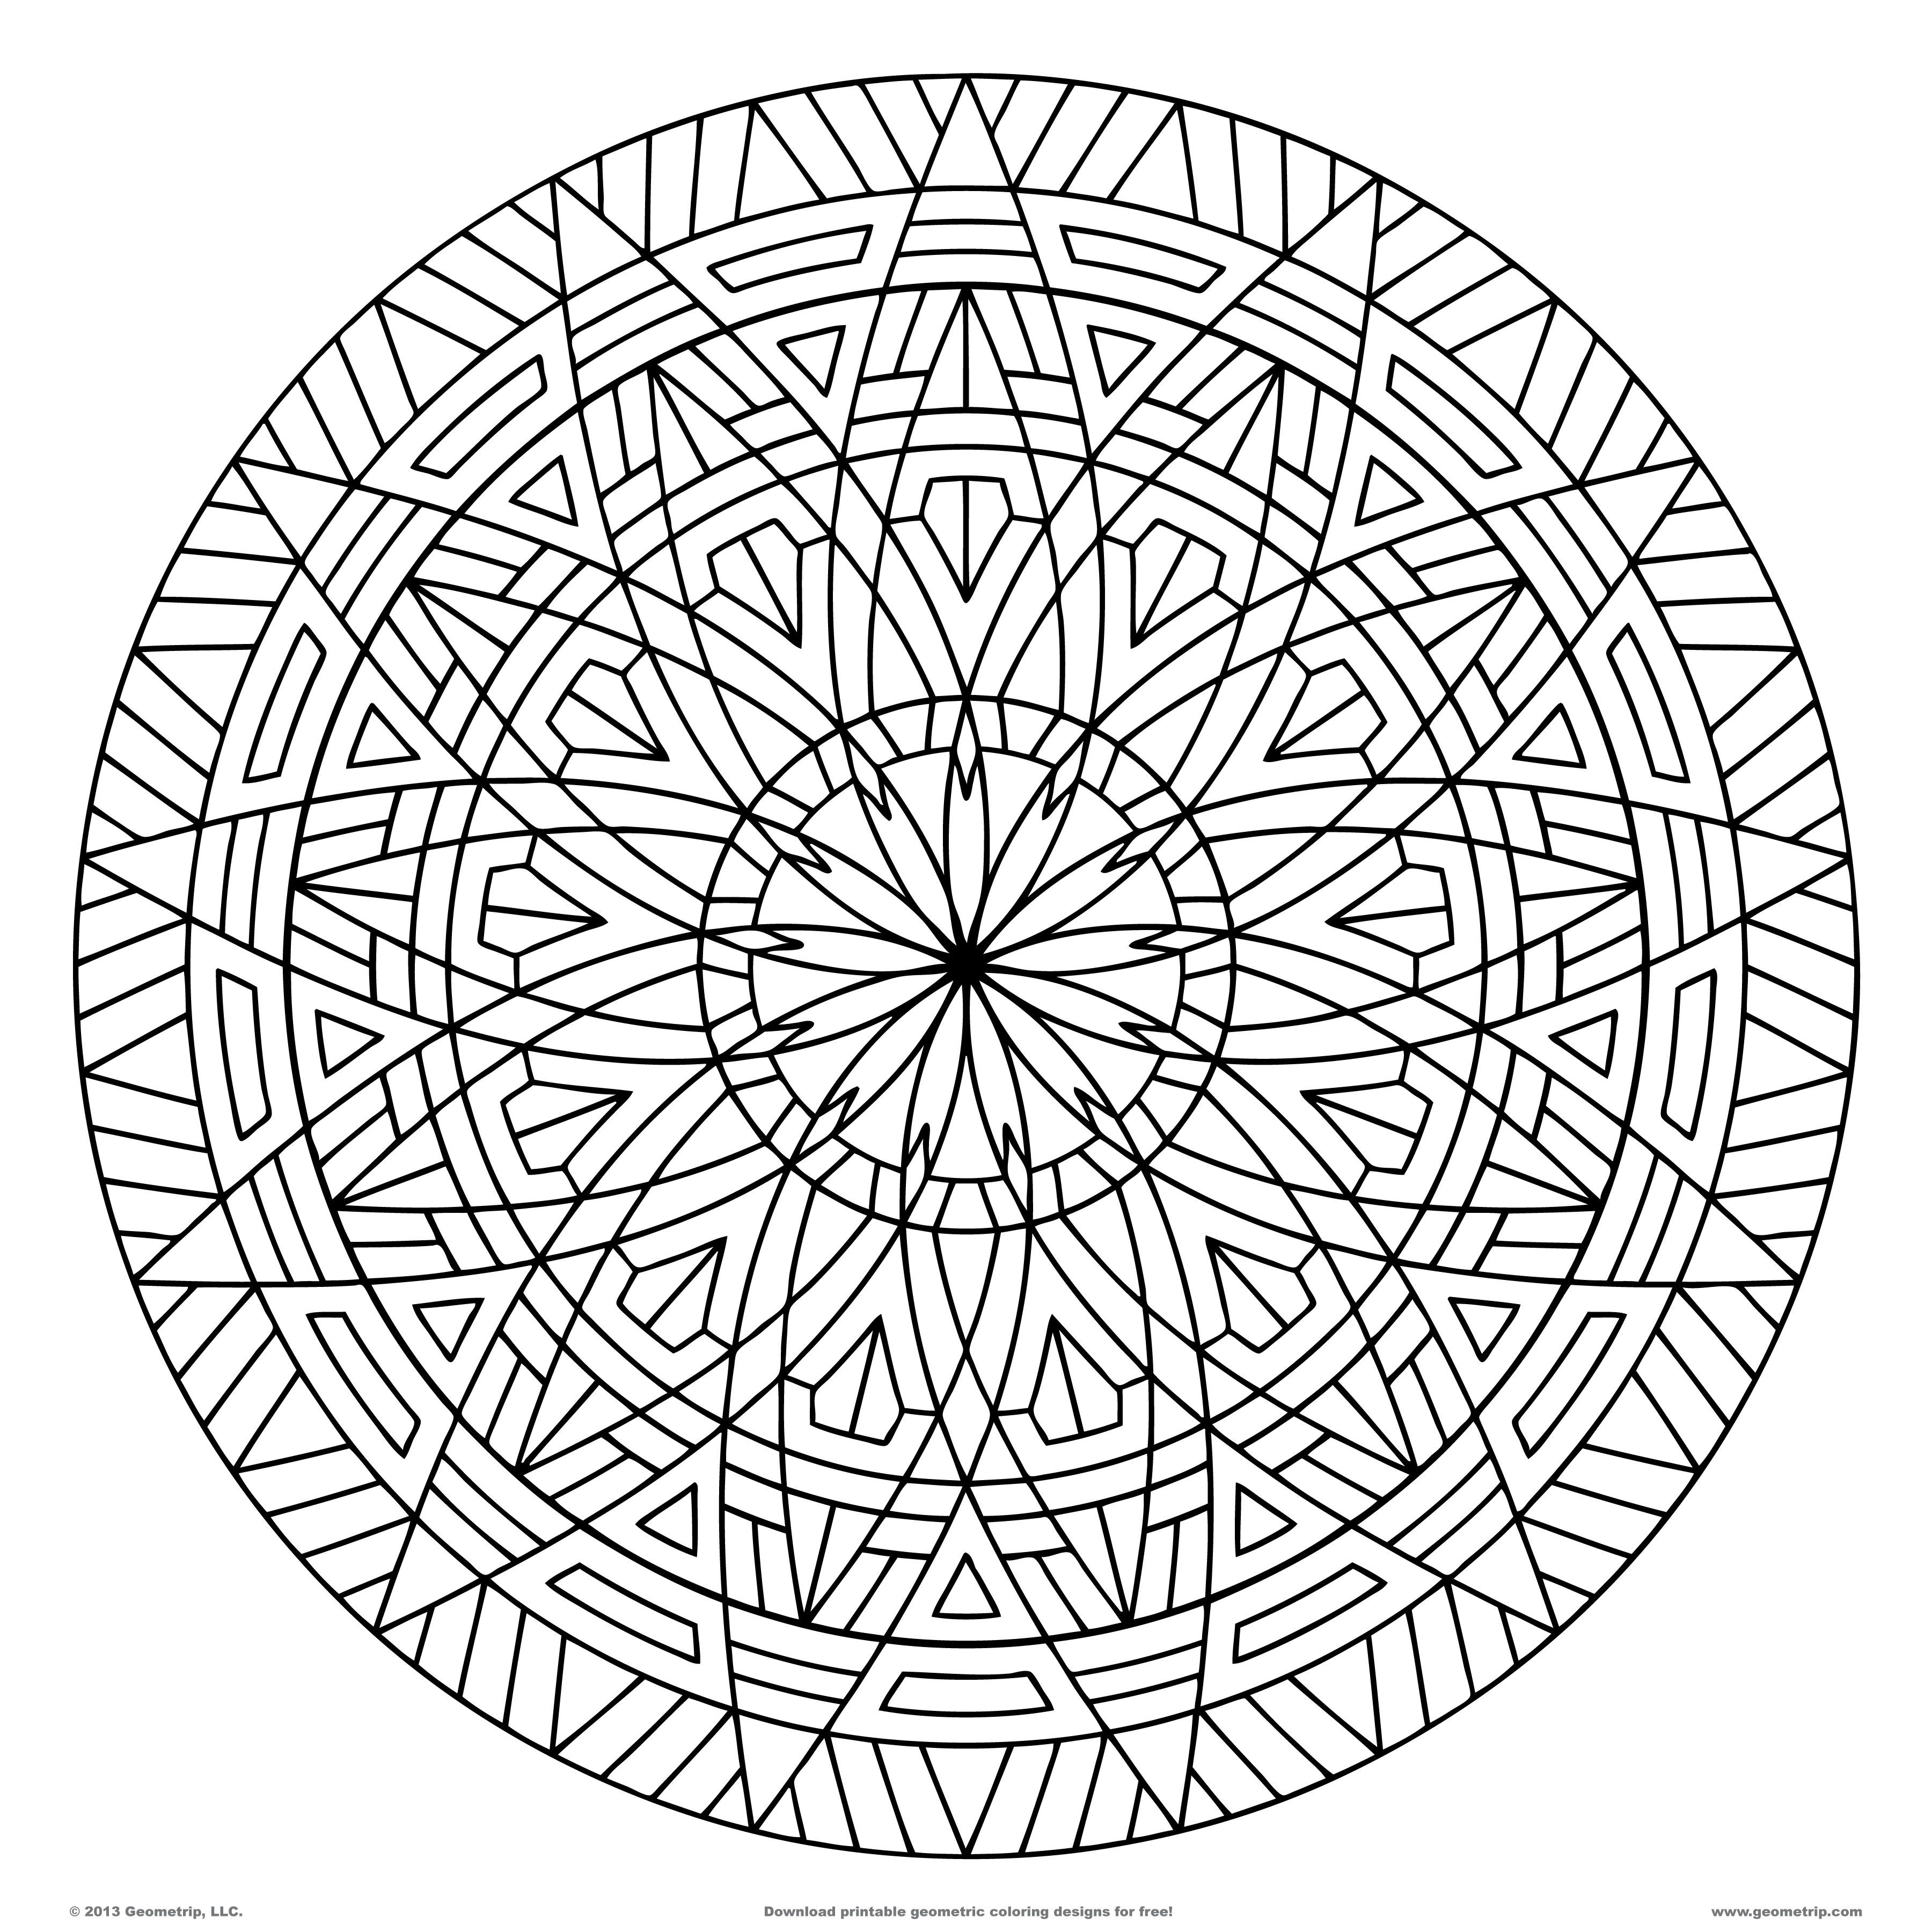 patterns for colouring for adults colouring page patterns williamhannahuk colouring adults colouring patterns for for